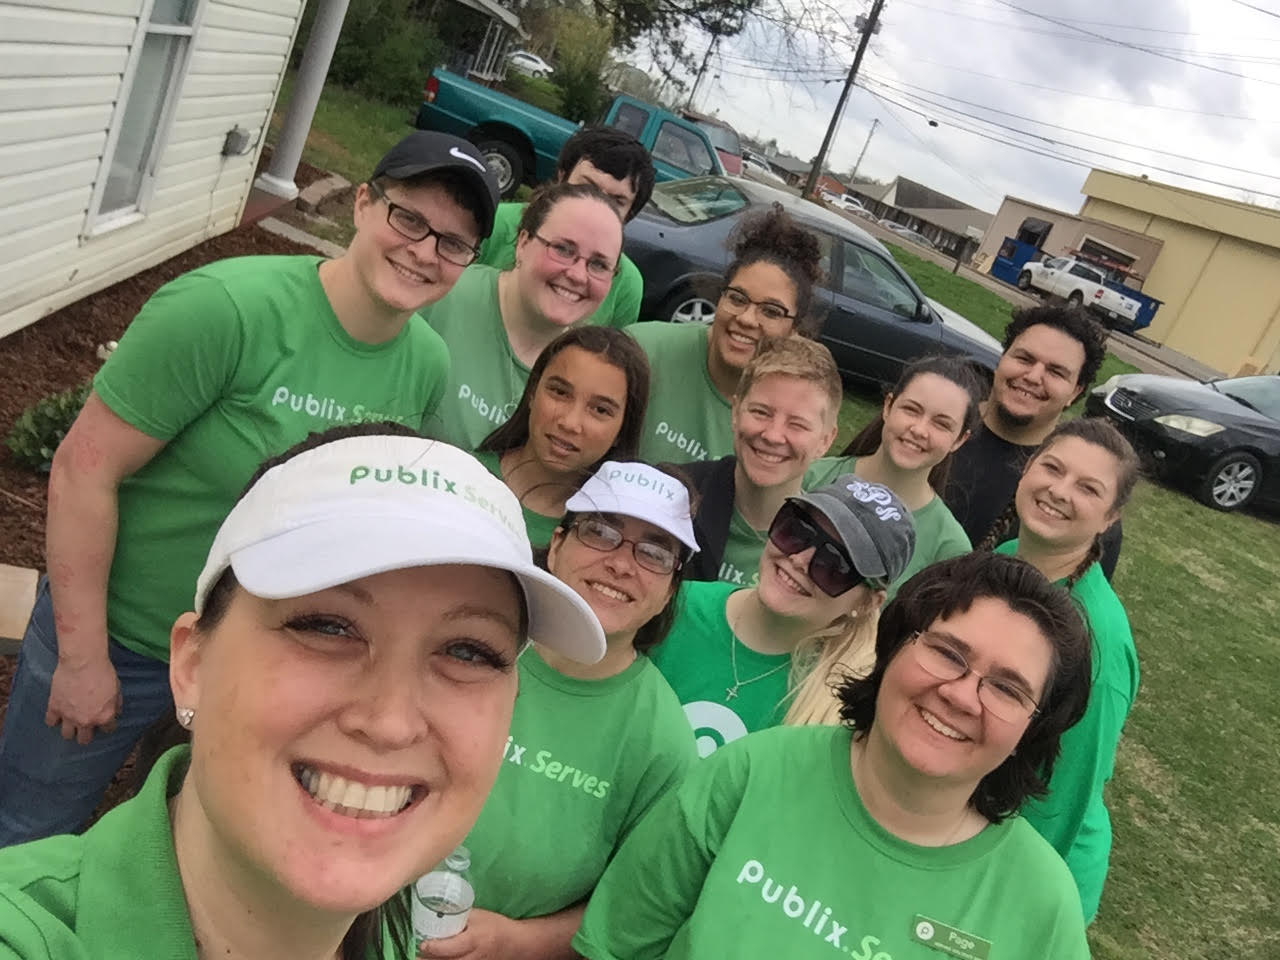 Publix Work Day at the Harris Home